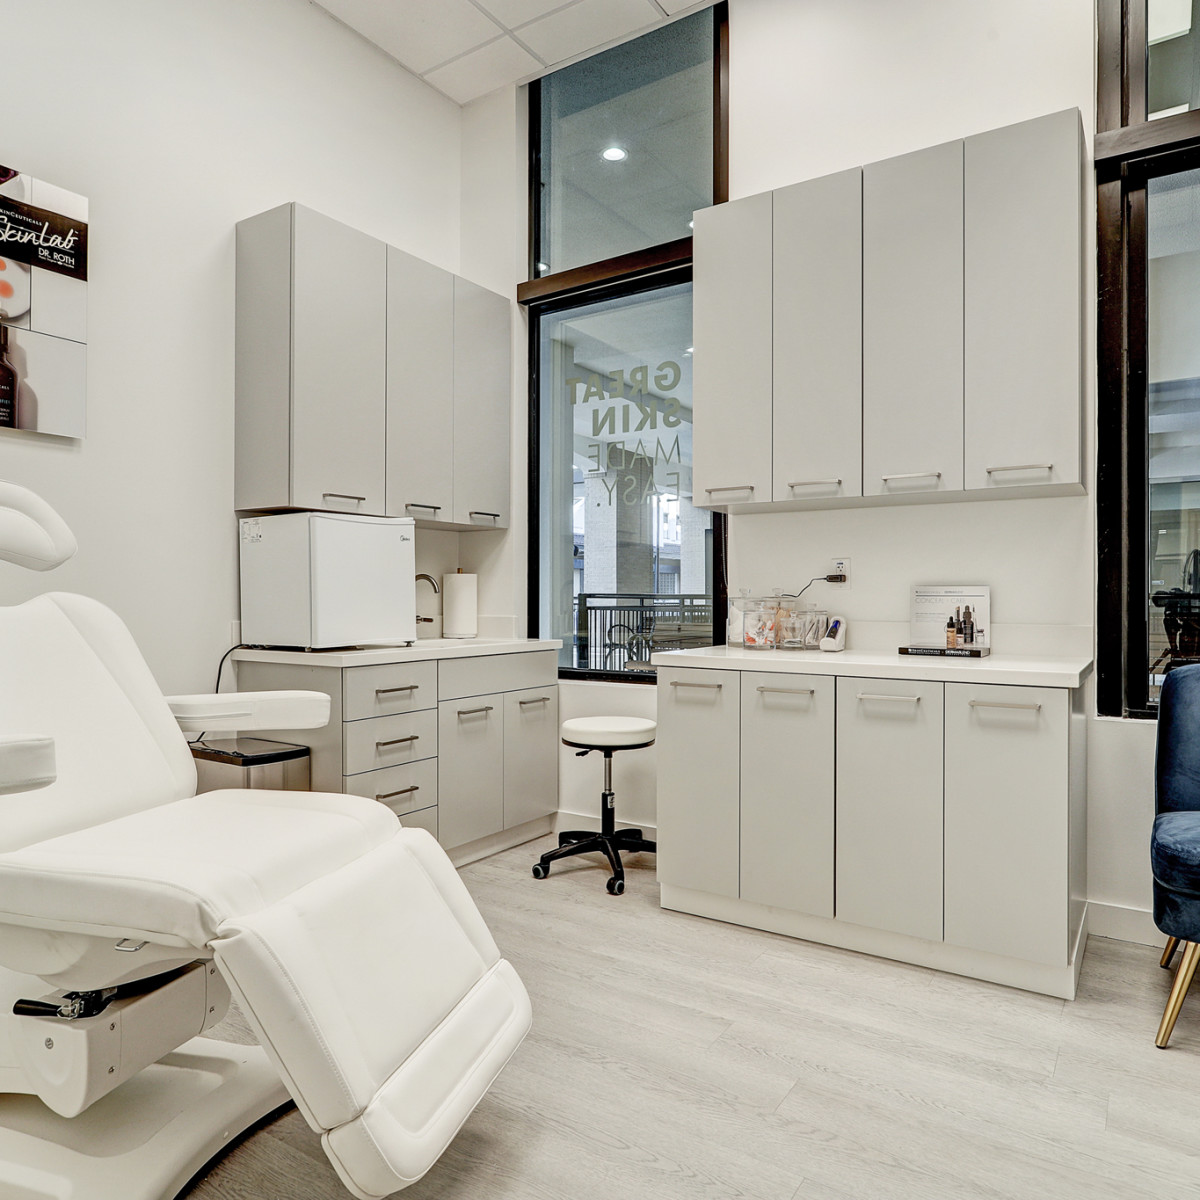 SkinCeuticals SkinLab Houston